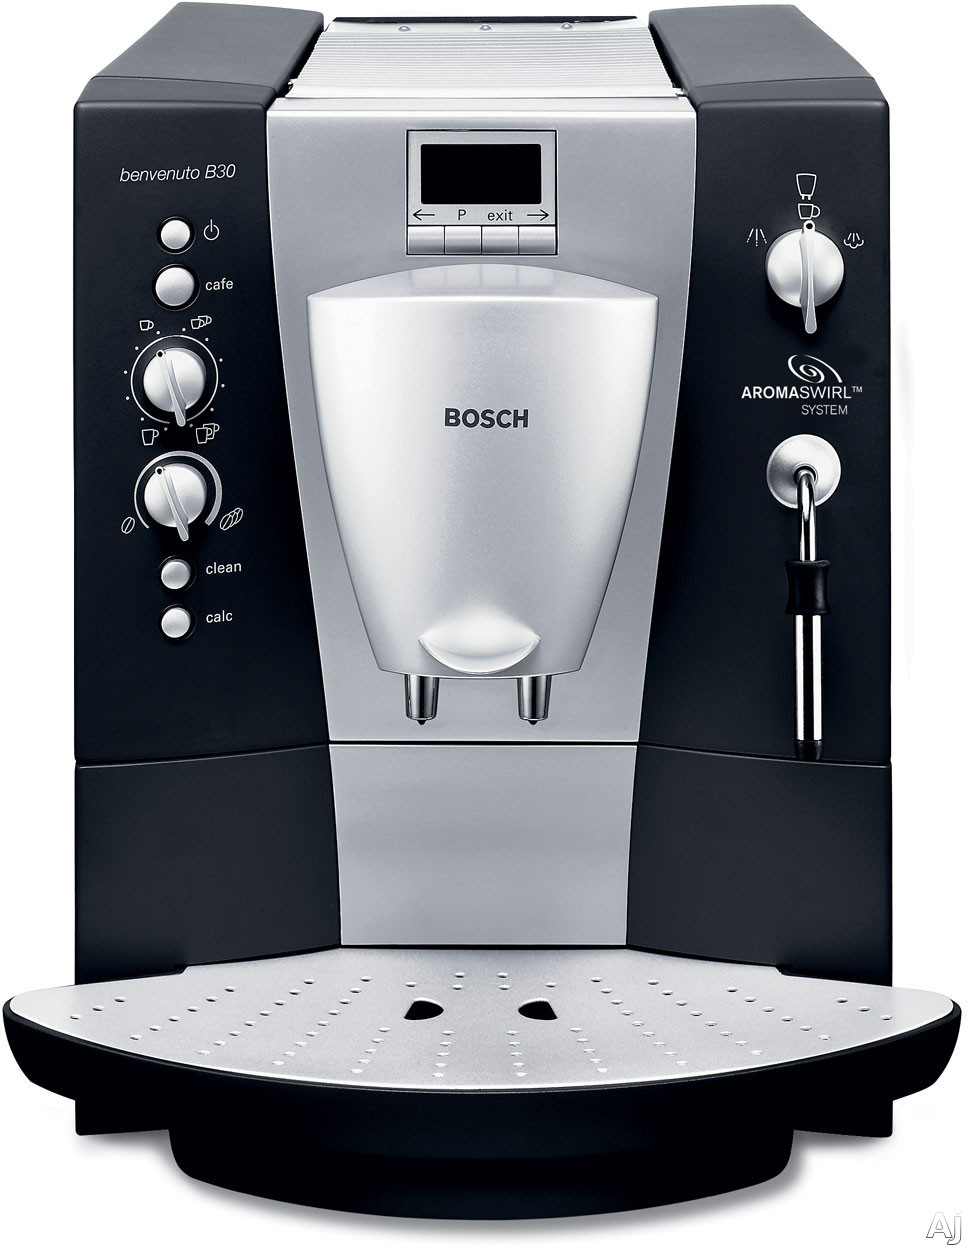 Bosch Tca6301uc Fully Automatic Freestanding Coffee Machine With Maker Wiring Diagram Image Disclaimer